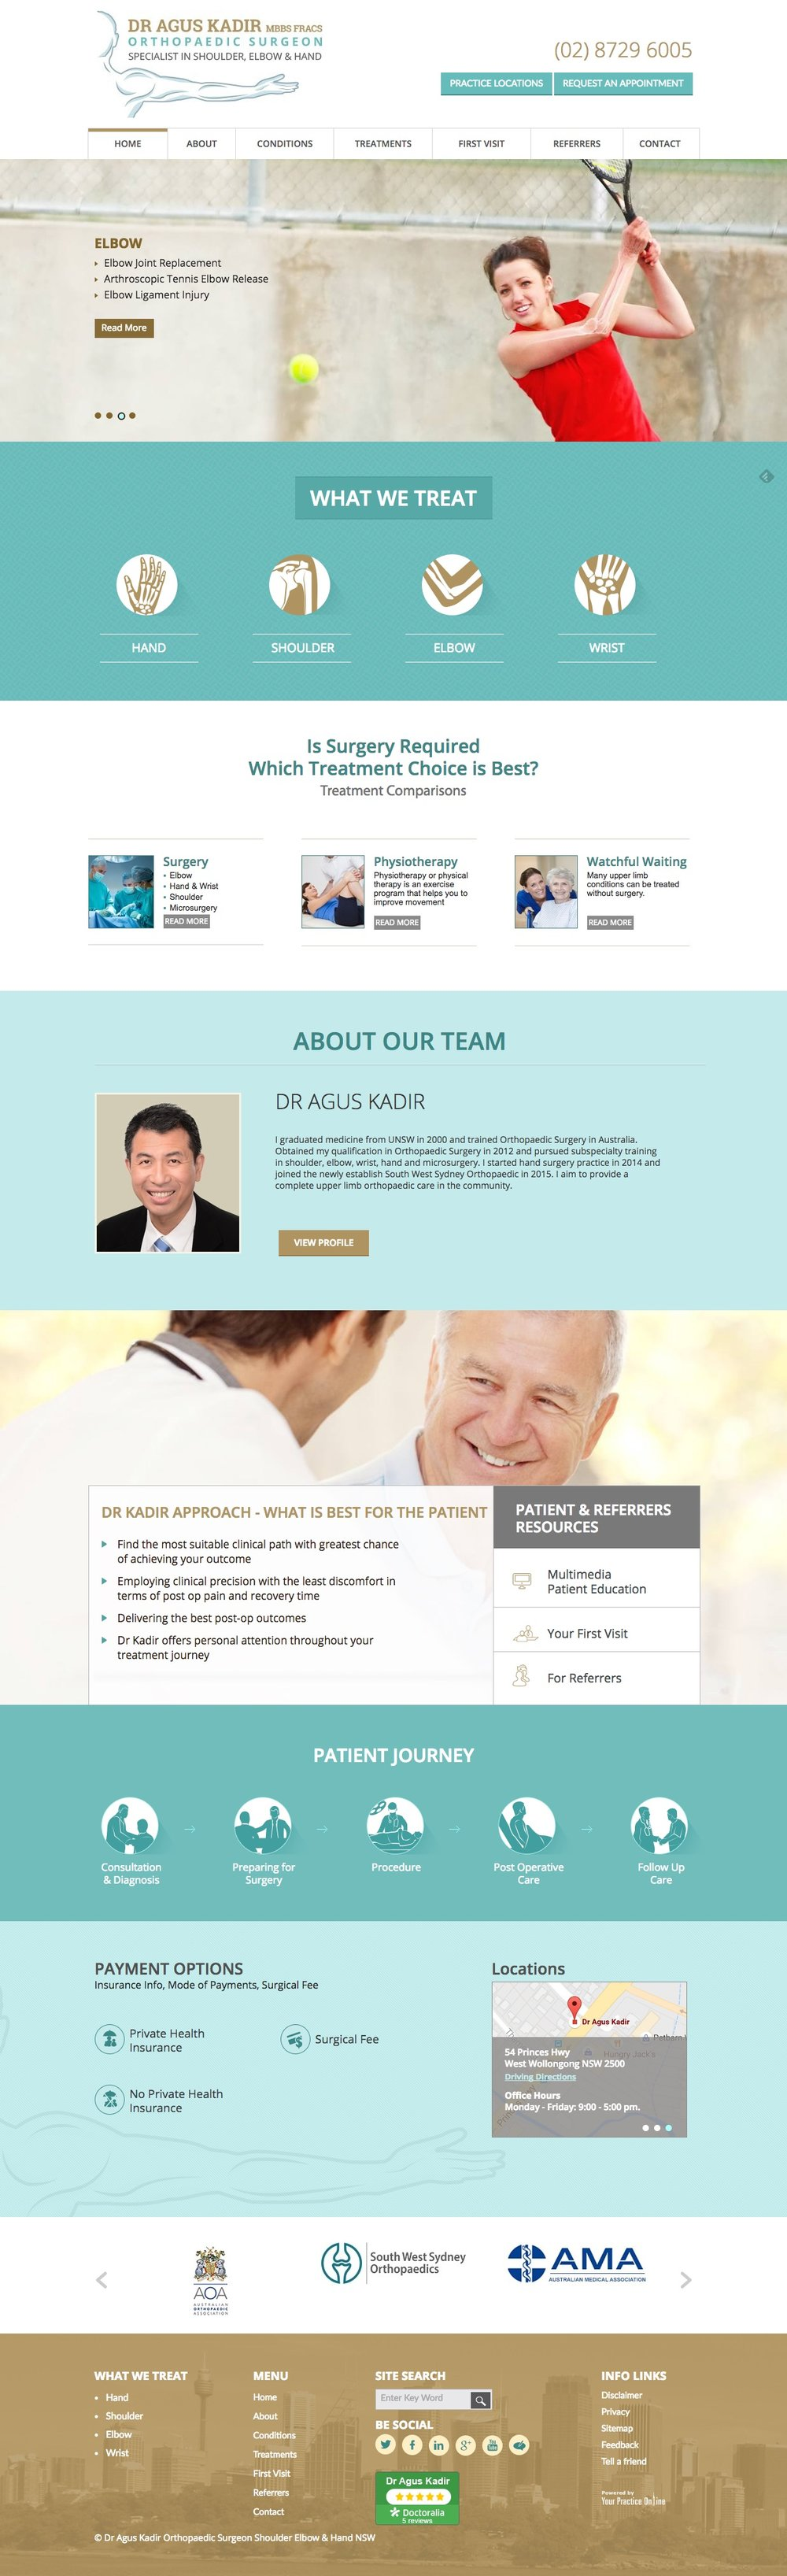 Dr. Agus Kadir  Orthopaedic Surgeon   Shoulder  Hand   Elbow Specialist NSW.jpg